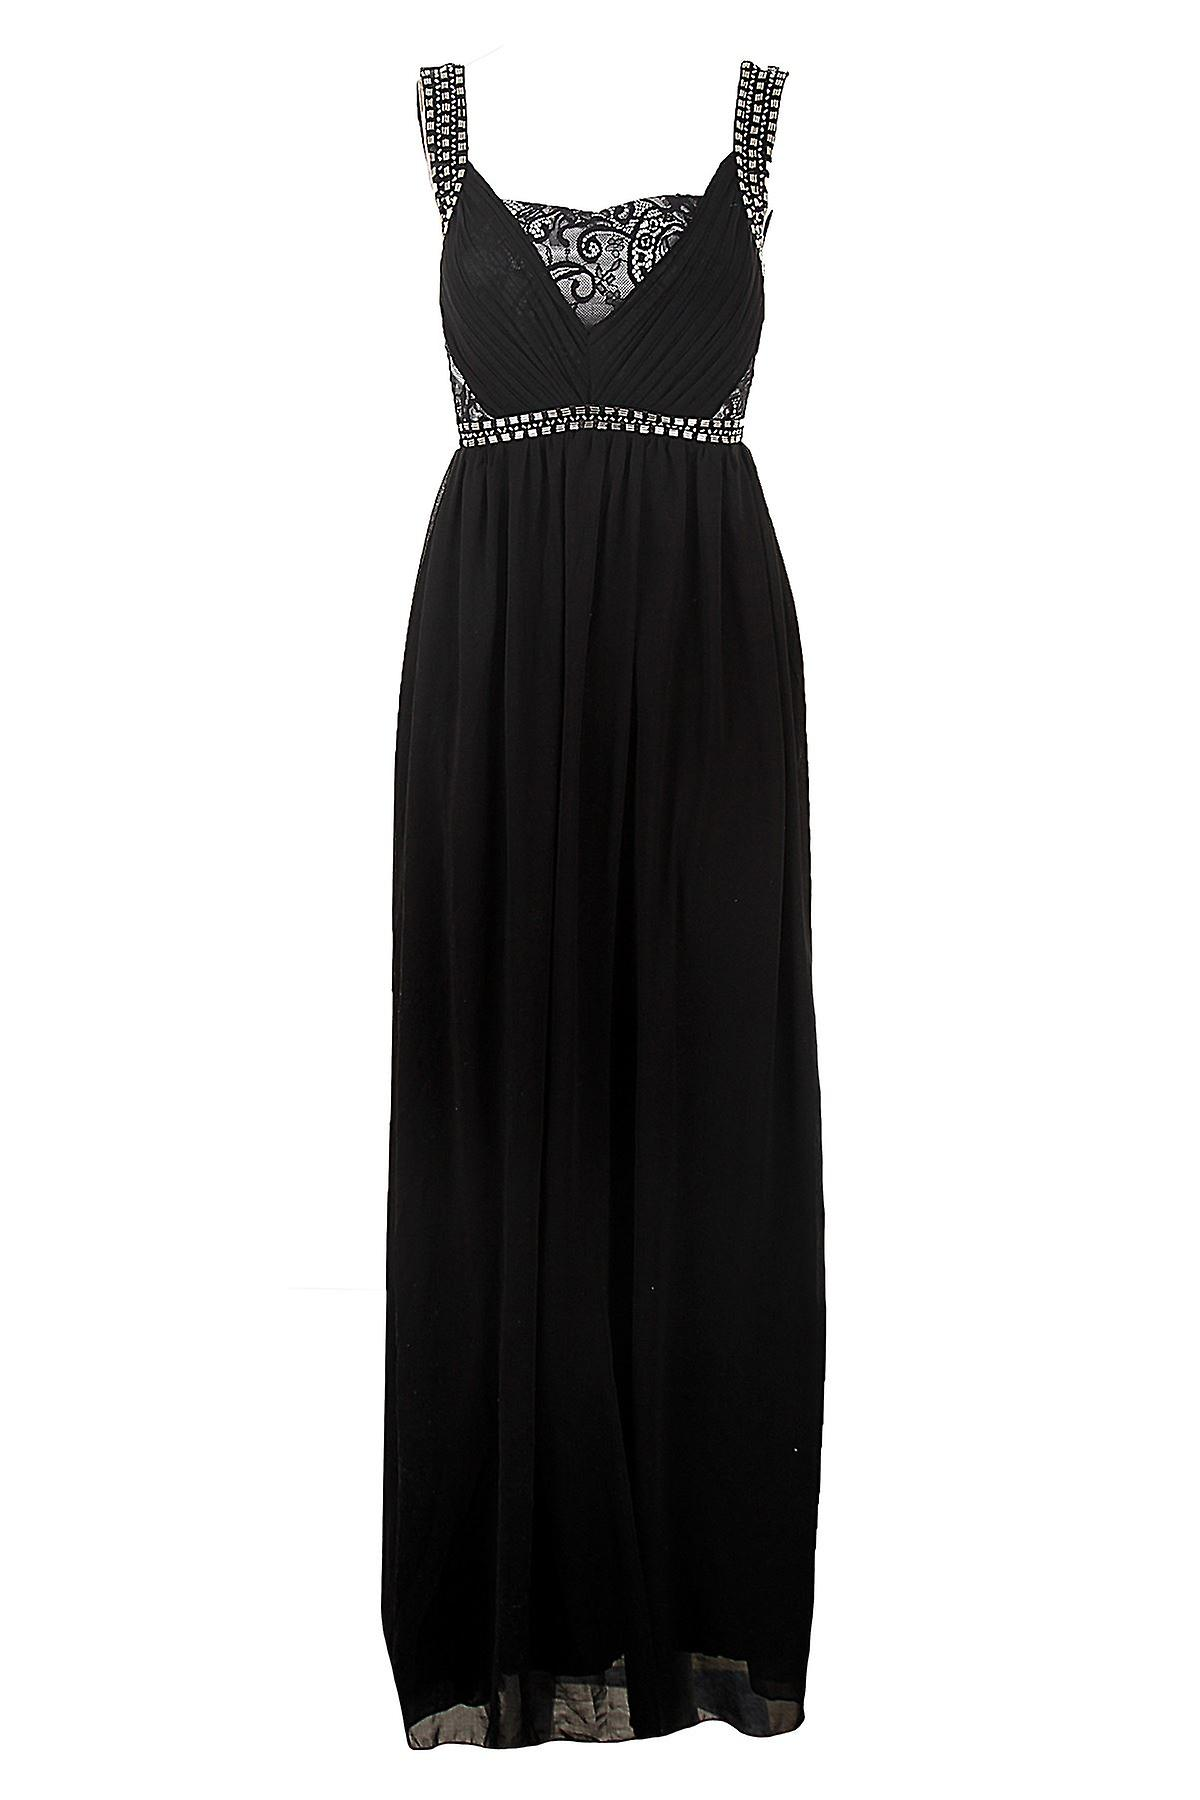 Ladies Diamante Strap Pleated Padded Lace Chiffon Long Maxi Women's Dress